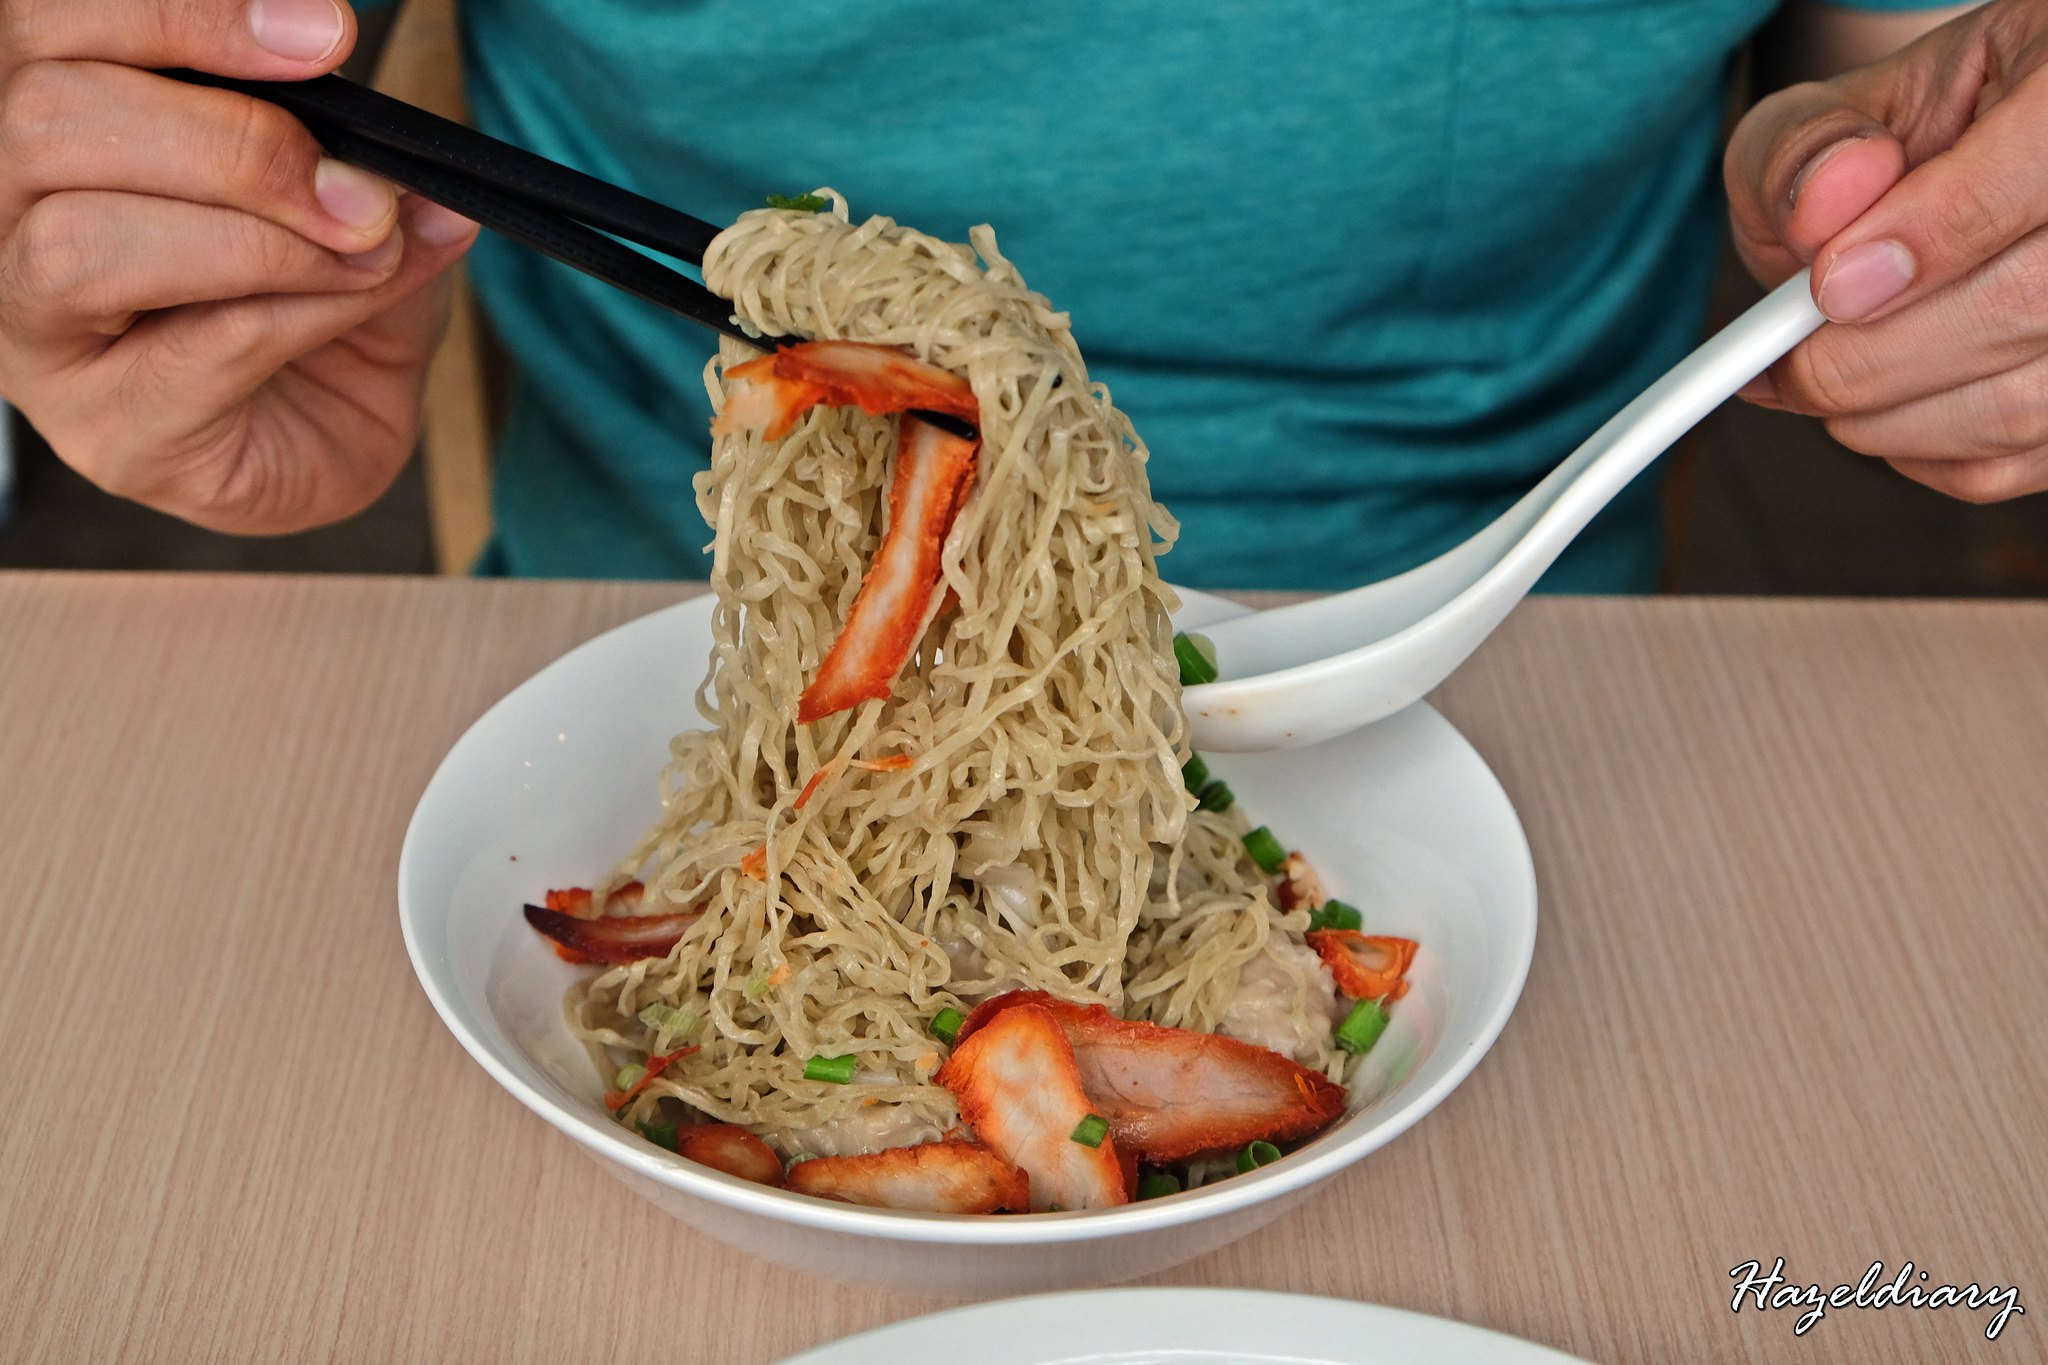 [JB EATS] Ho Seng Kee 何成記云吞面世家 – JB Famous Wanton Mee  At Johor Bahru City Square Mall